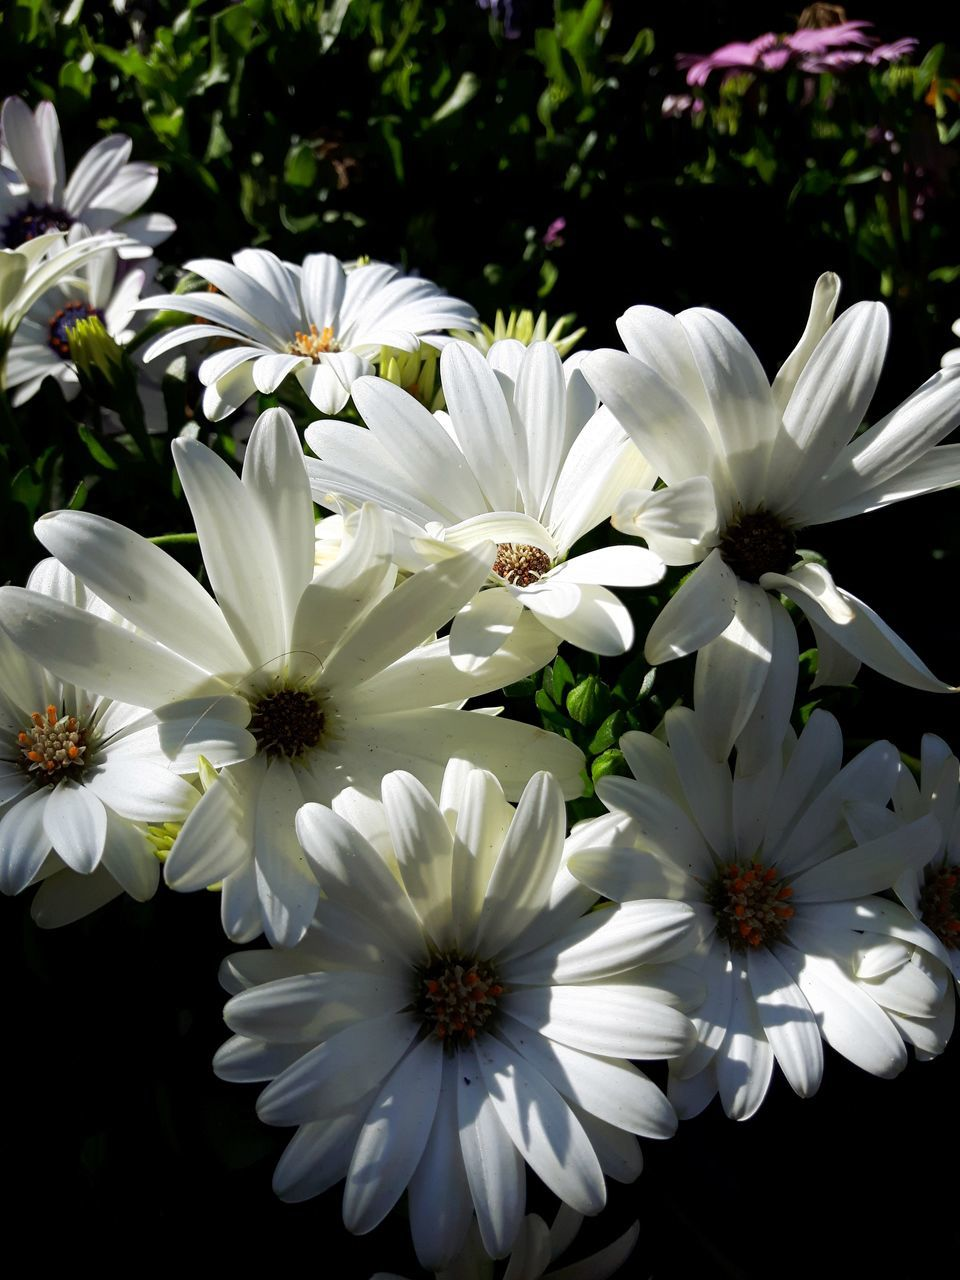 flower, white color, petal, beauty in nature, nature, fragility, freshness, no people, plant, growth, flower head, osteospermum, blooming, outdoors, day, close-up